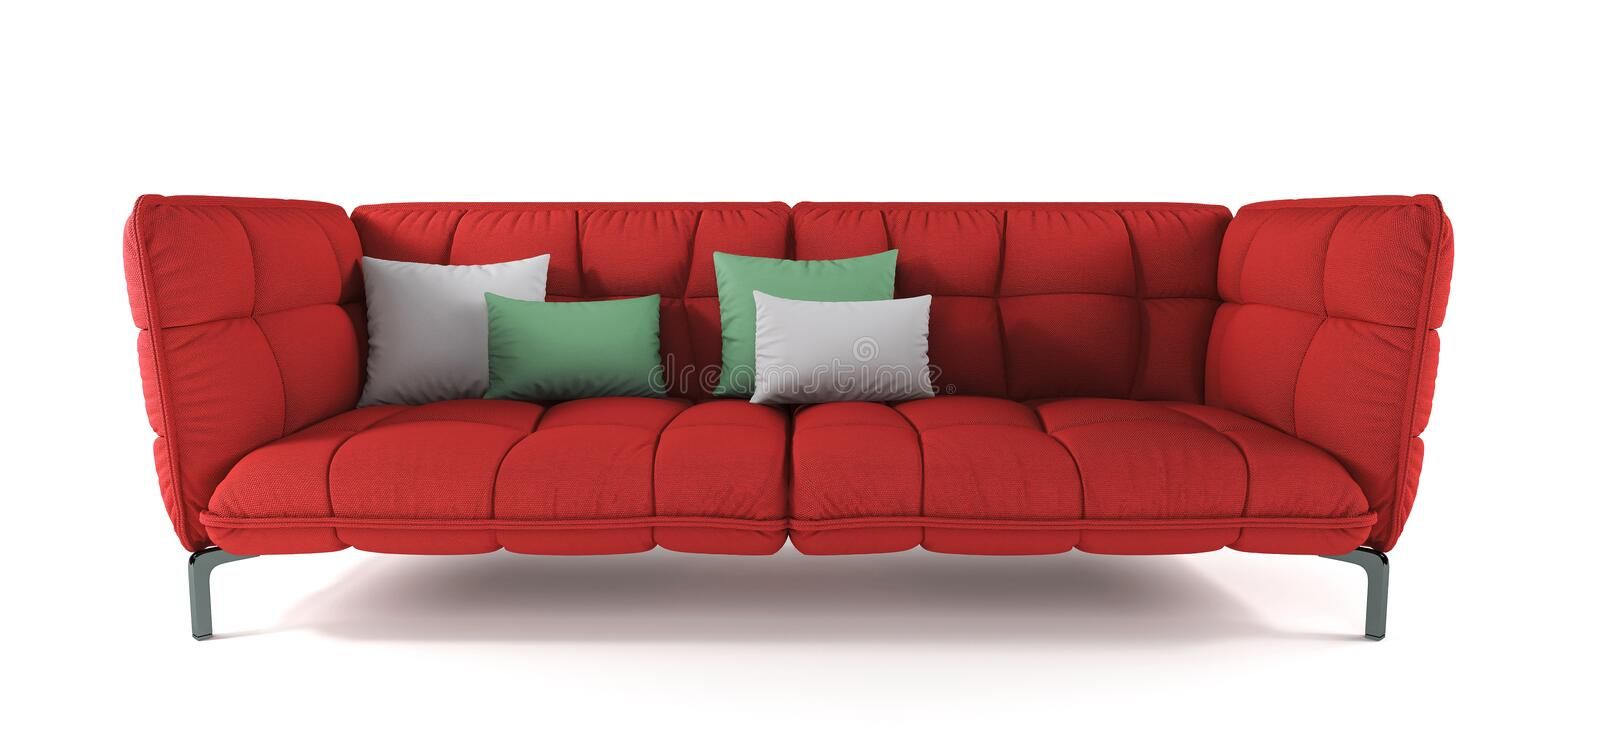 Modern red quilted fabric sofa on metal legs with pillows on isolated white background. Furniture, interior object. Bright scarlet stock photography